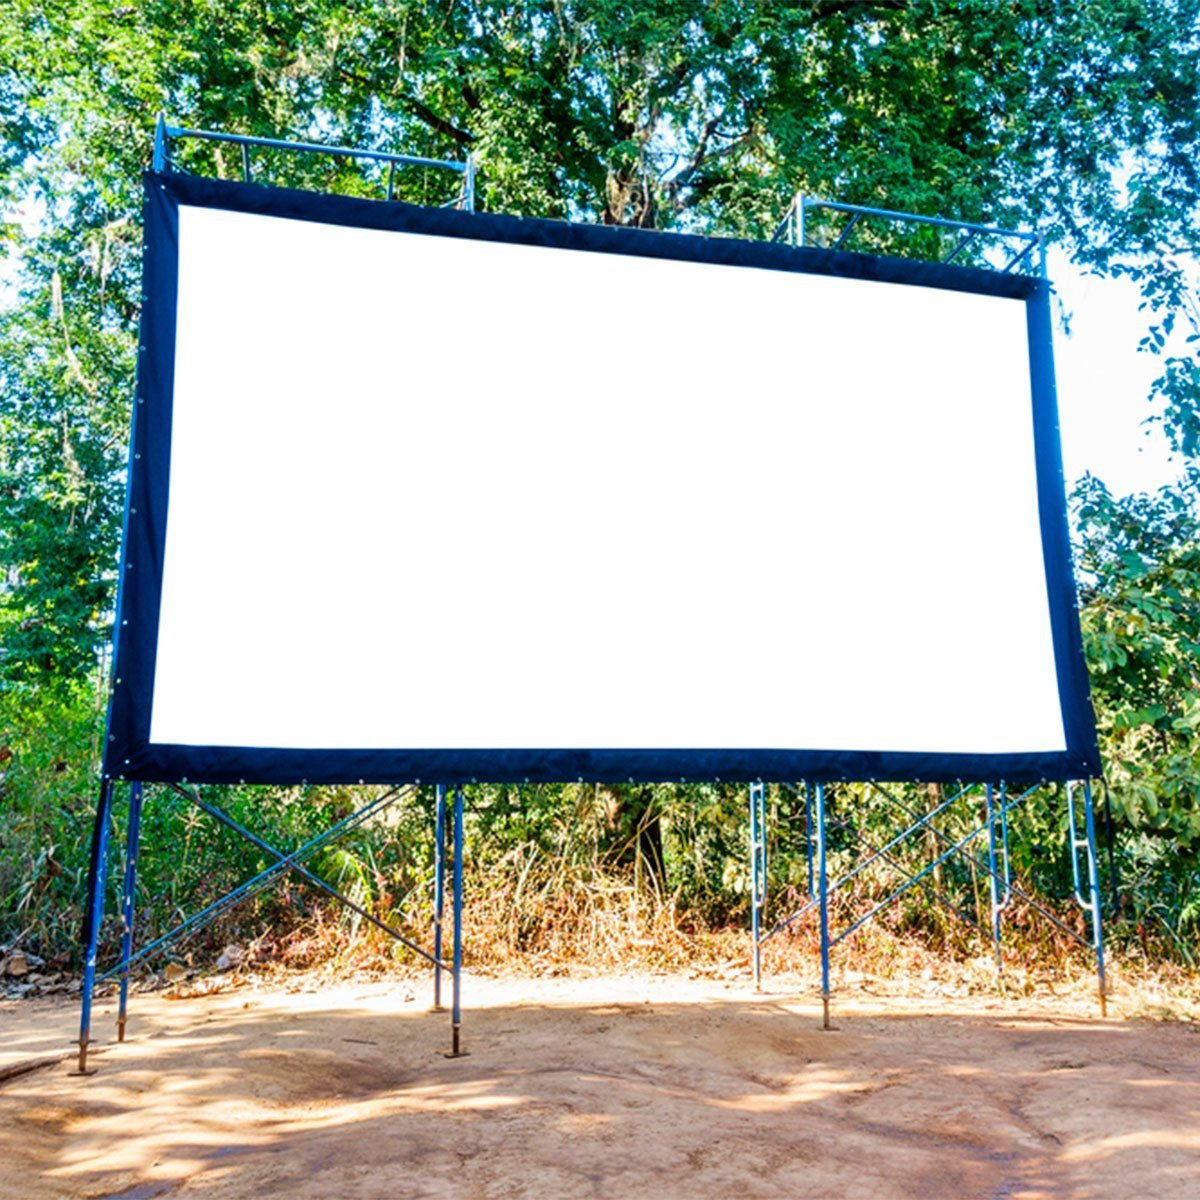 What You Need for a DIY Backyard Movie Theater   Reader's ...